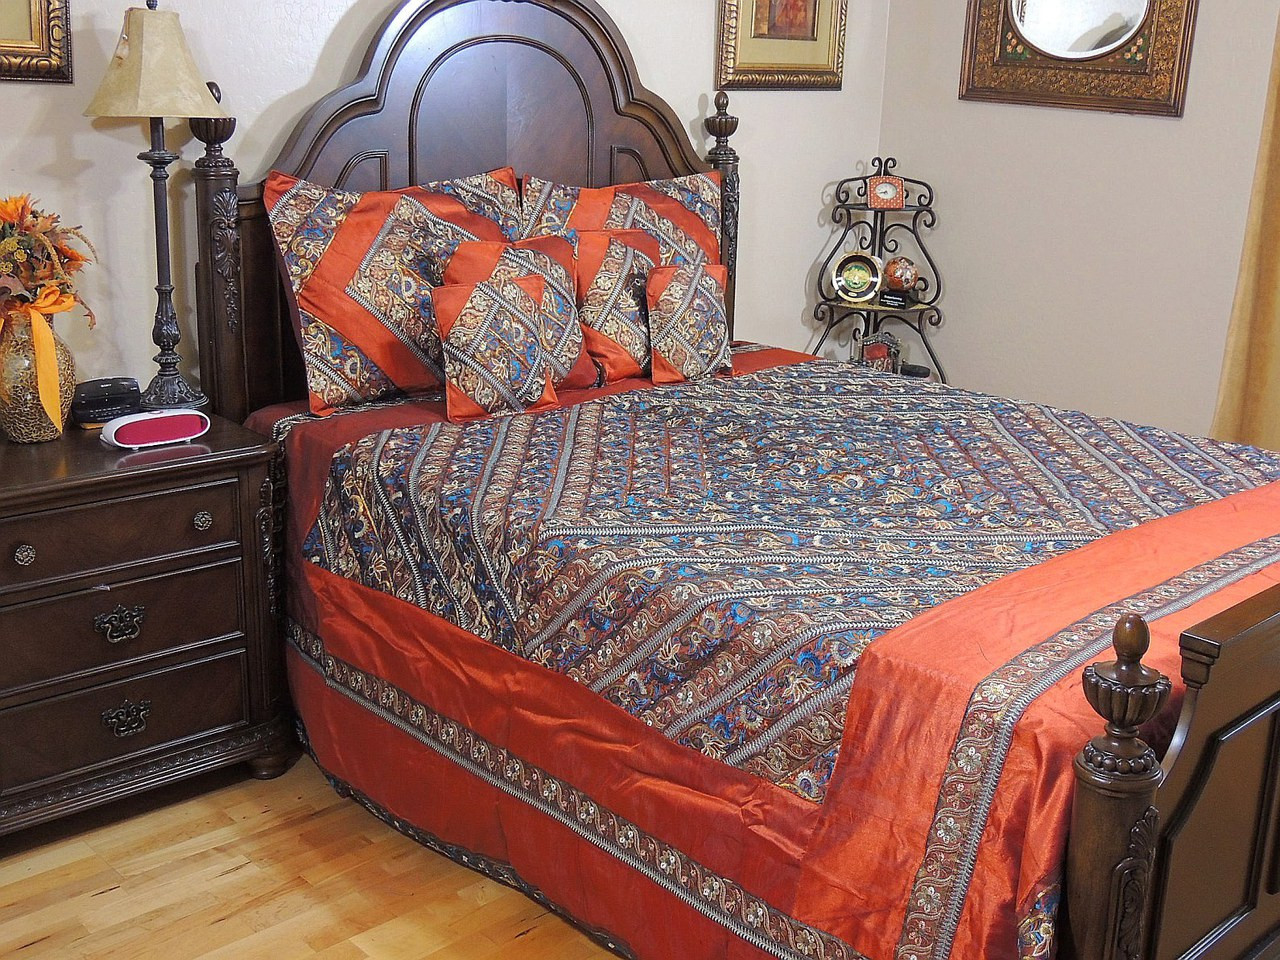 Luxury Queen Duvet Cover Set With Pillow Shams   Bohemian Indian Bedding.